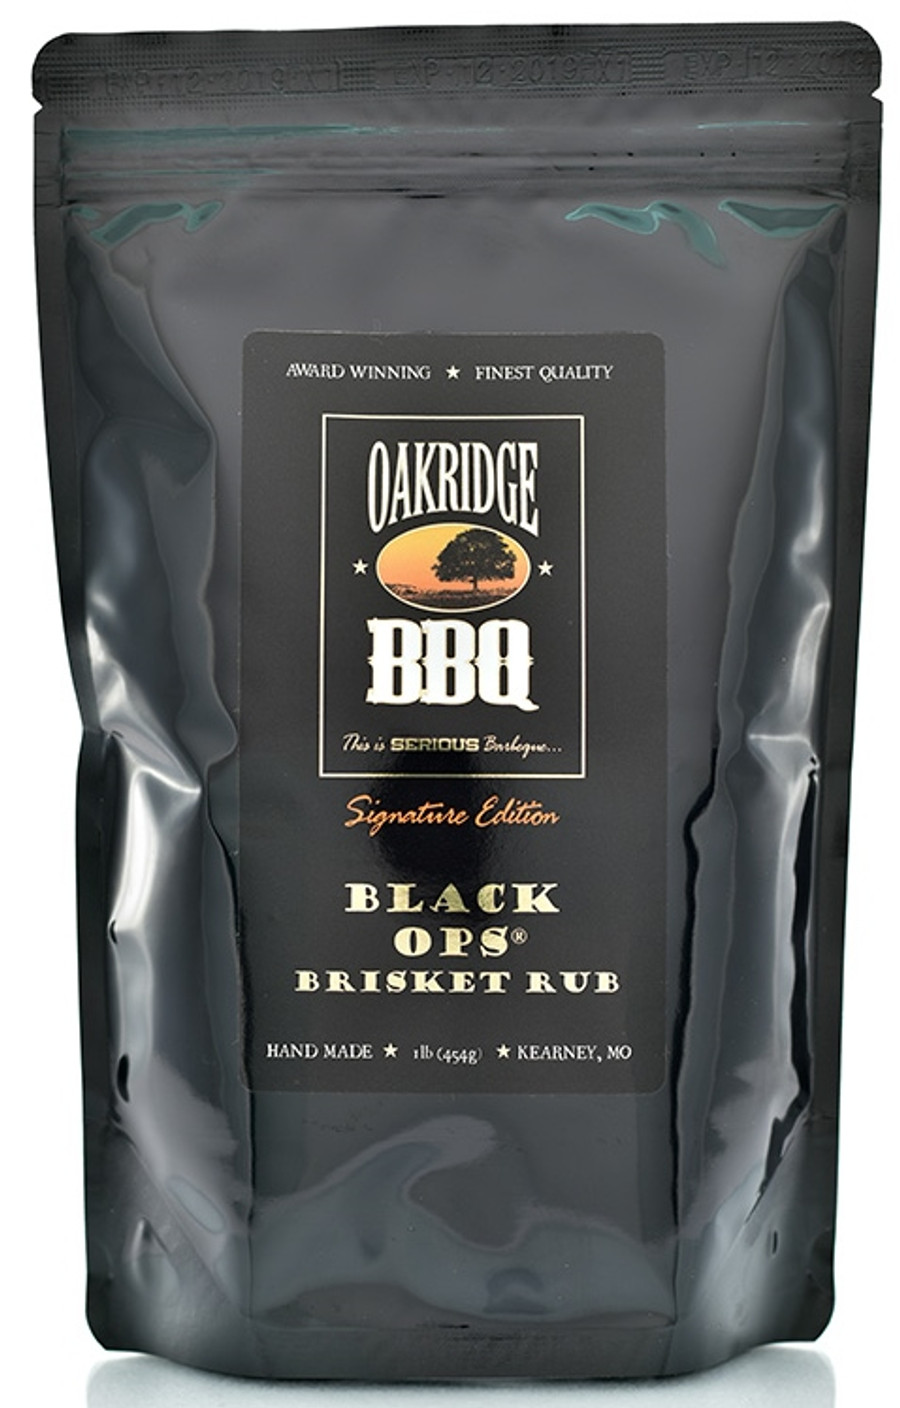 Oakridge BBQ Signature Edition Black OPS Brisket Rub 1lb